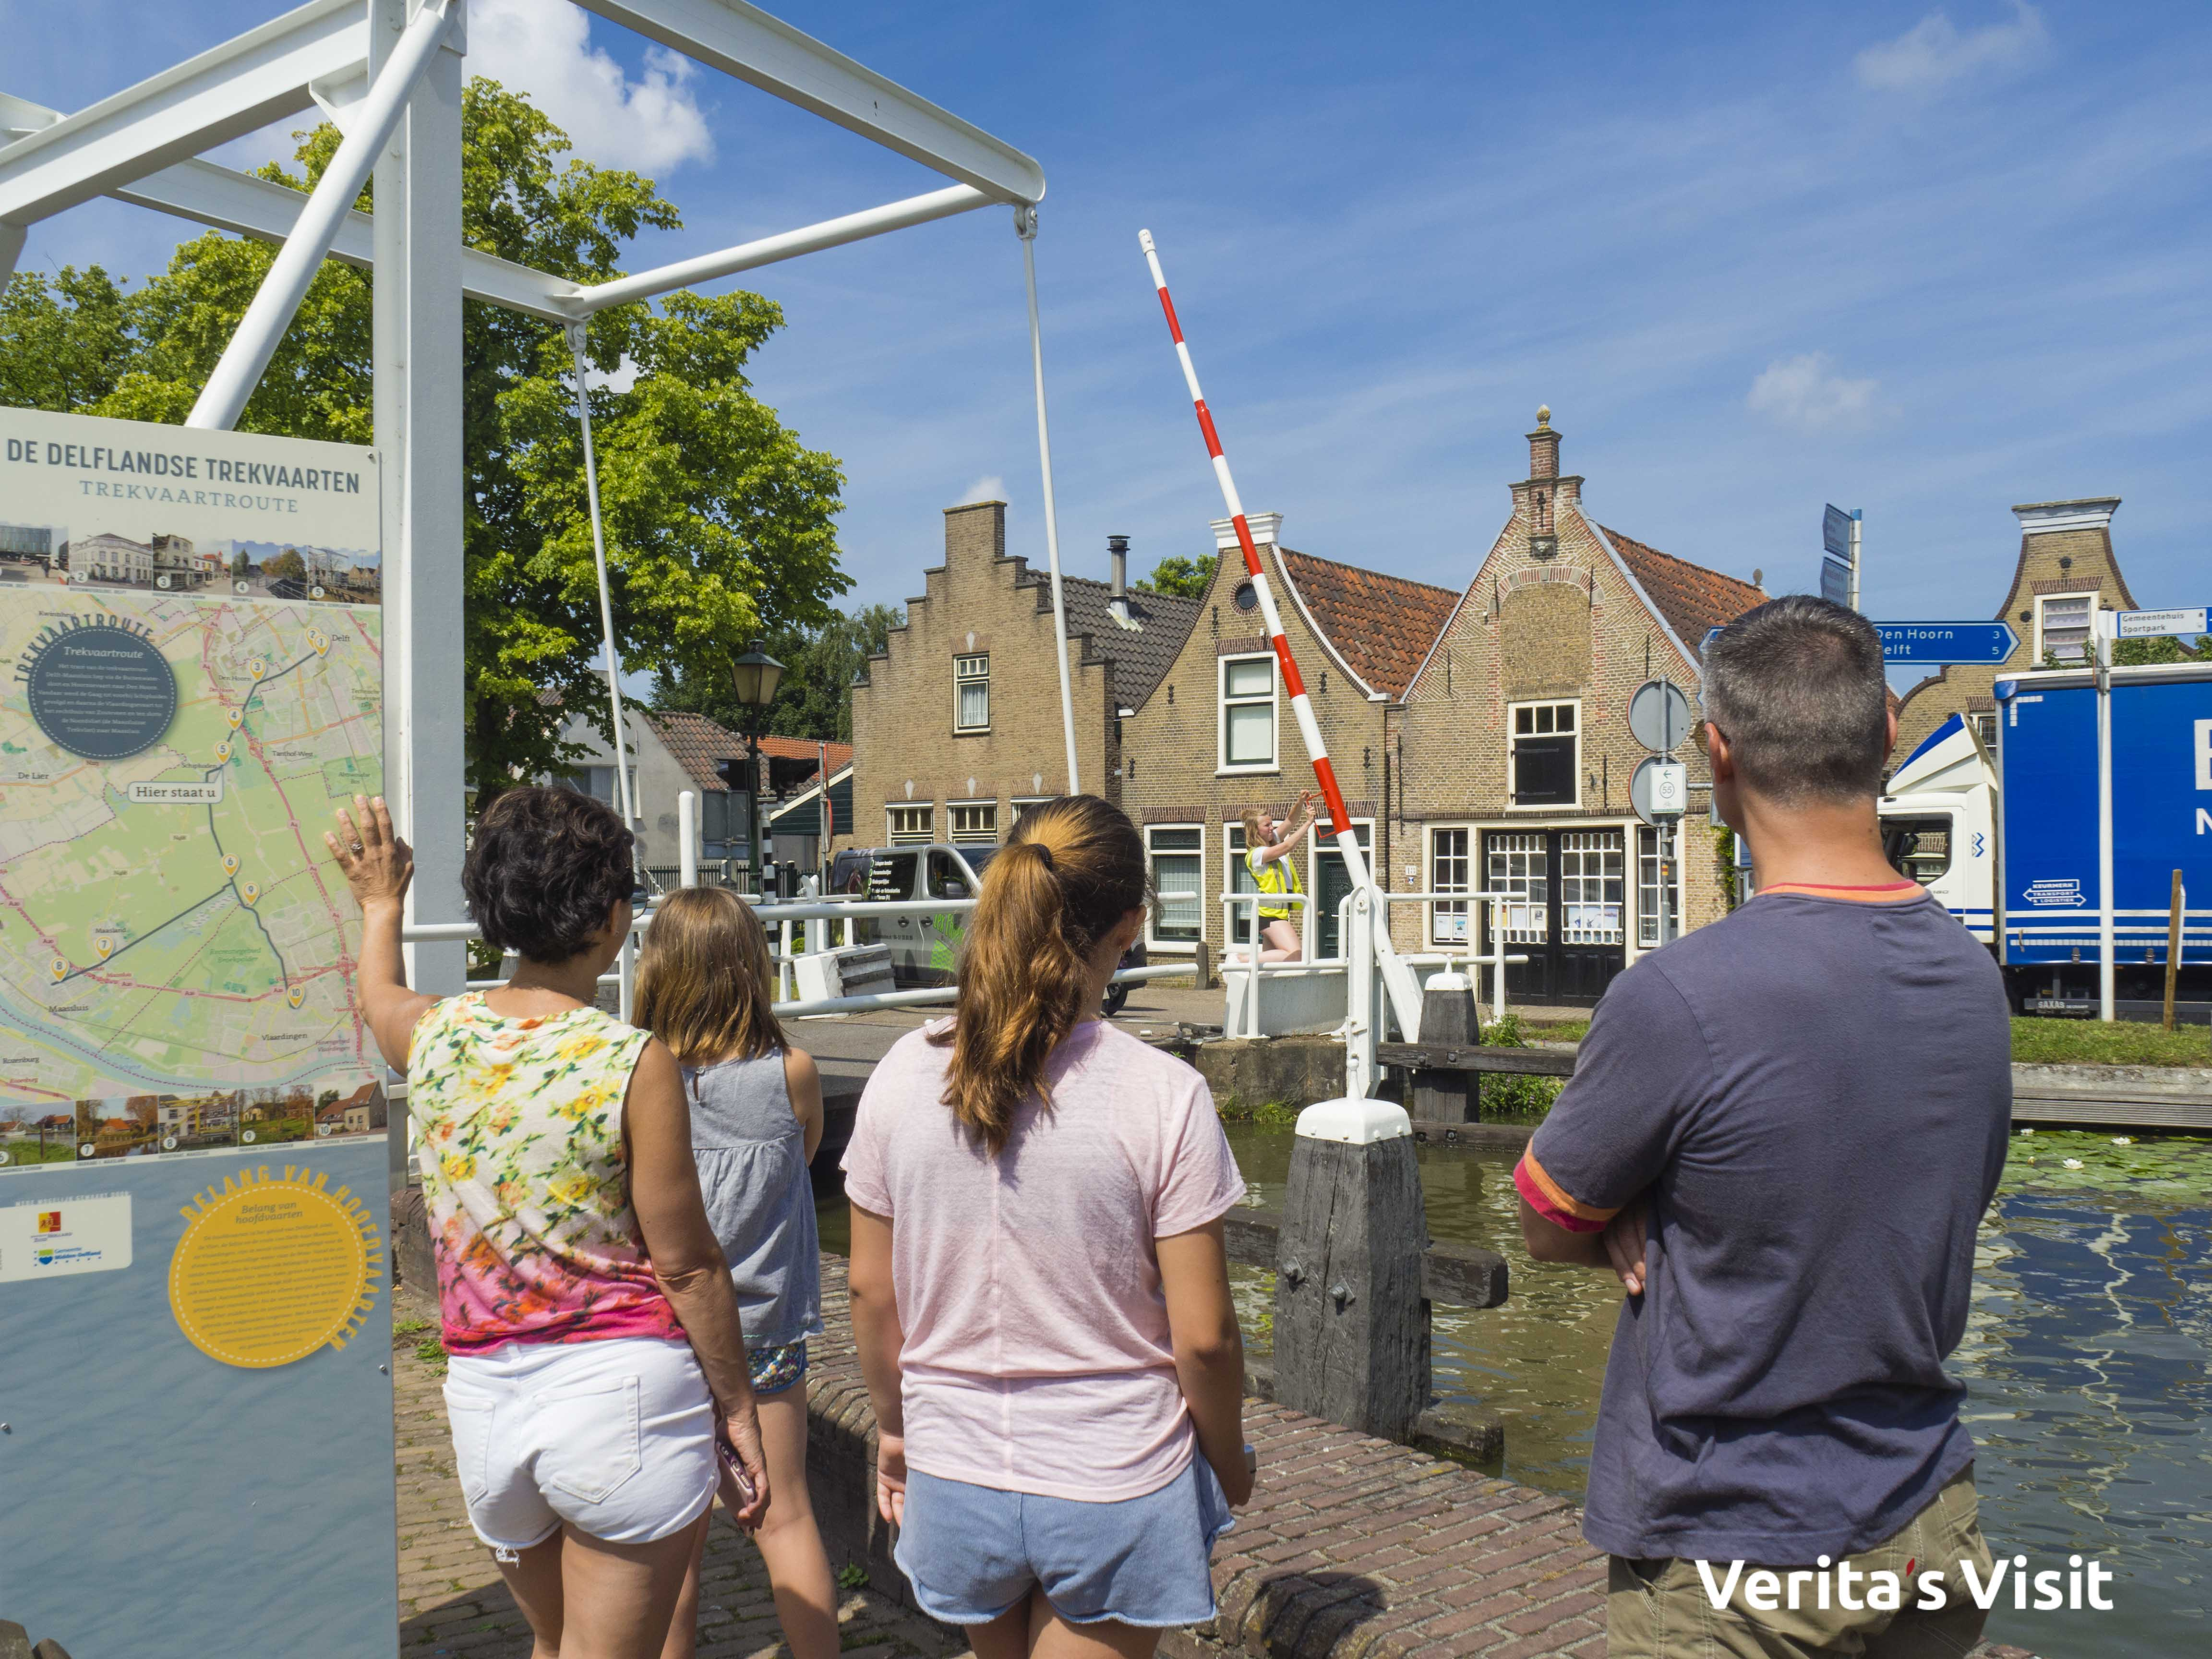 hand operated bridge tour Delft Verita's Visit ophaalbrug